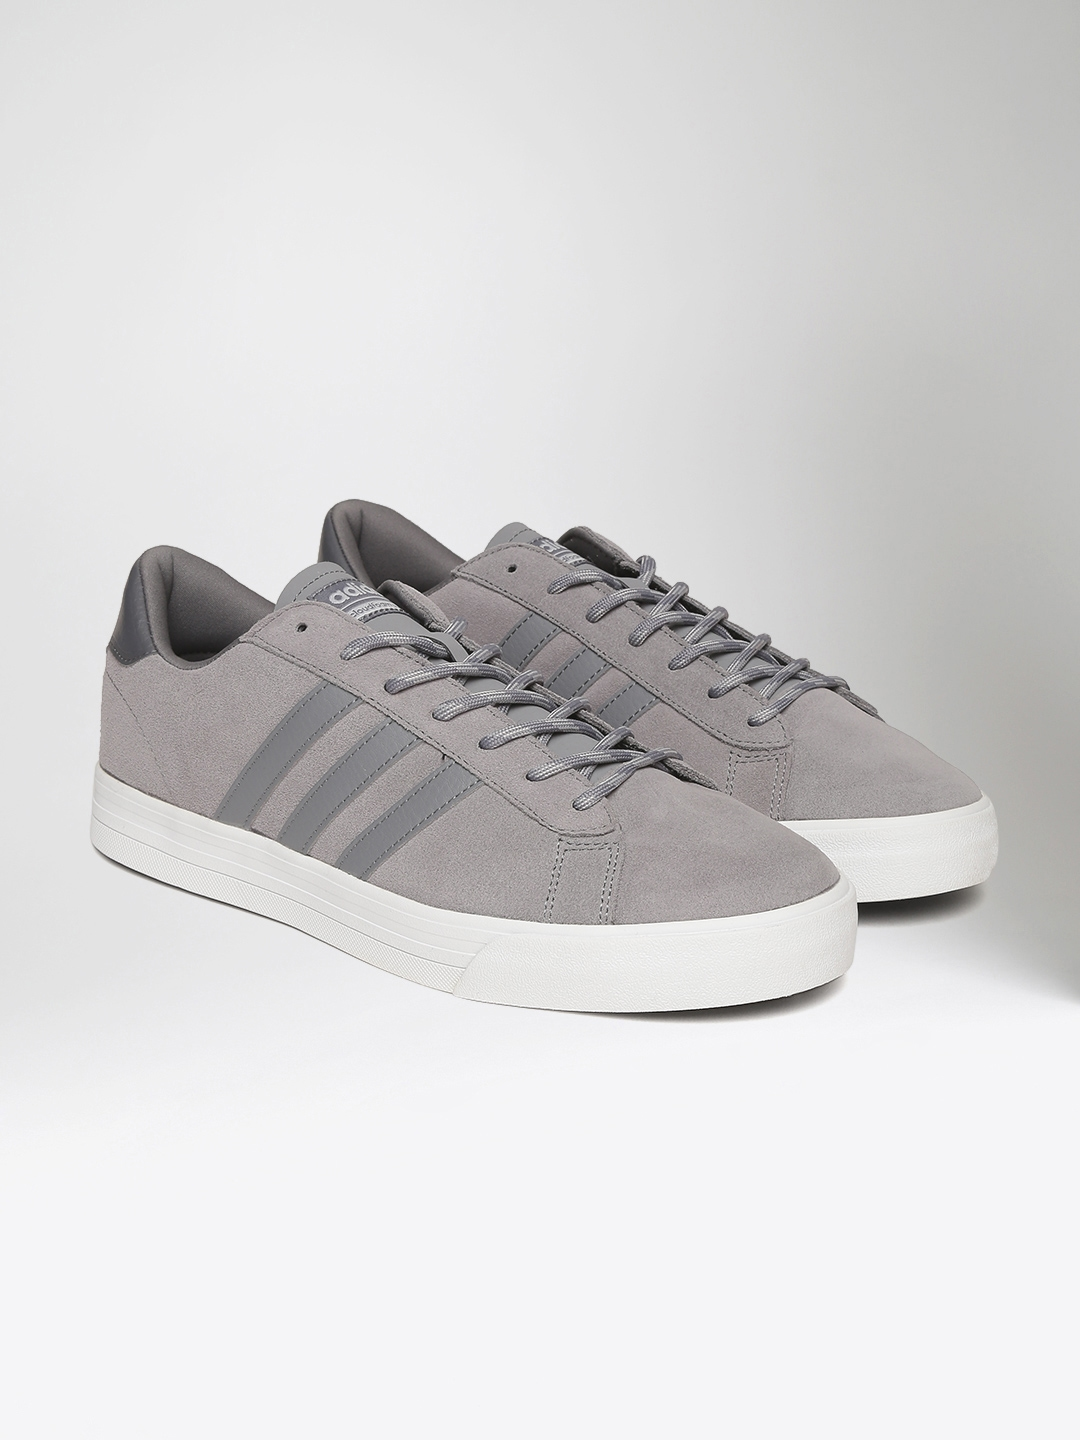 huge selection of 1b810 23fee ADIDAS NEO Men Grey CloadFoam Super Daily Sneakers